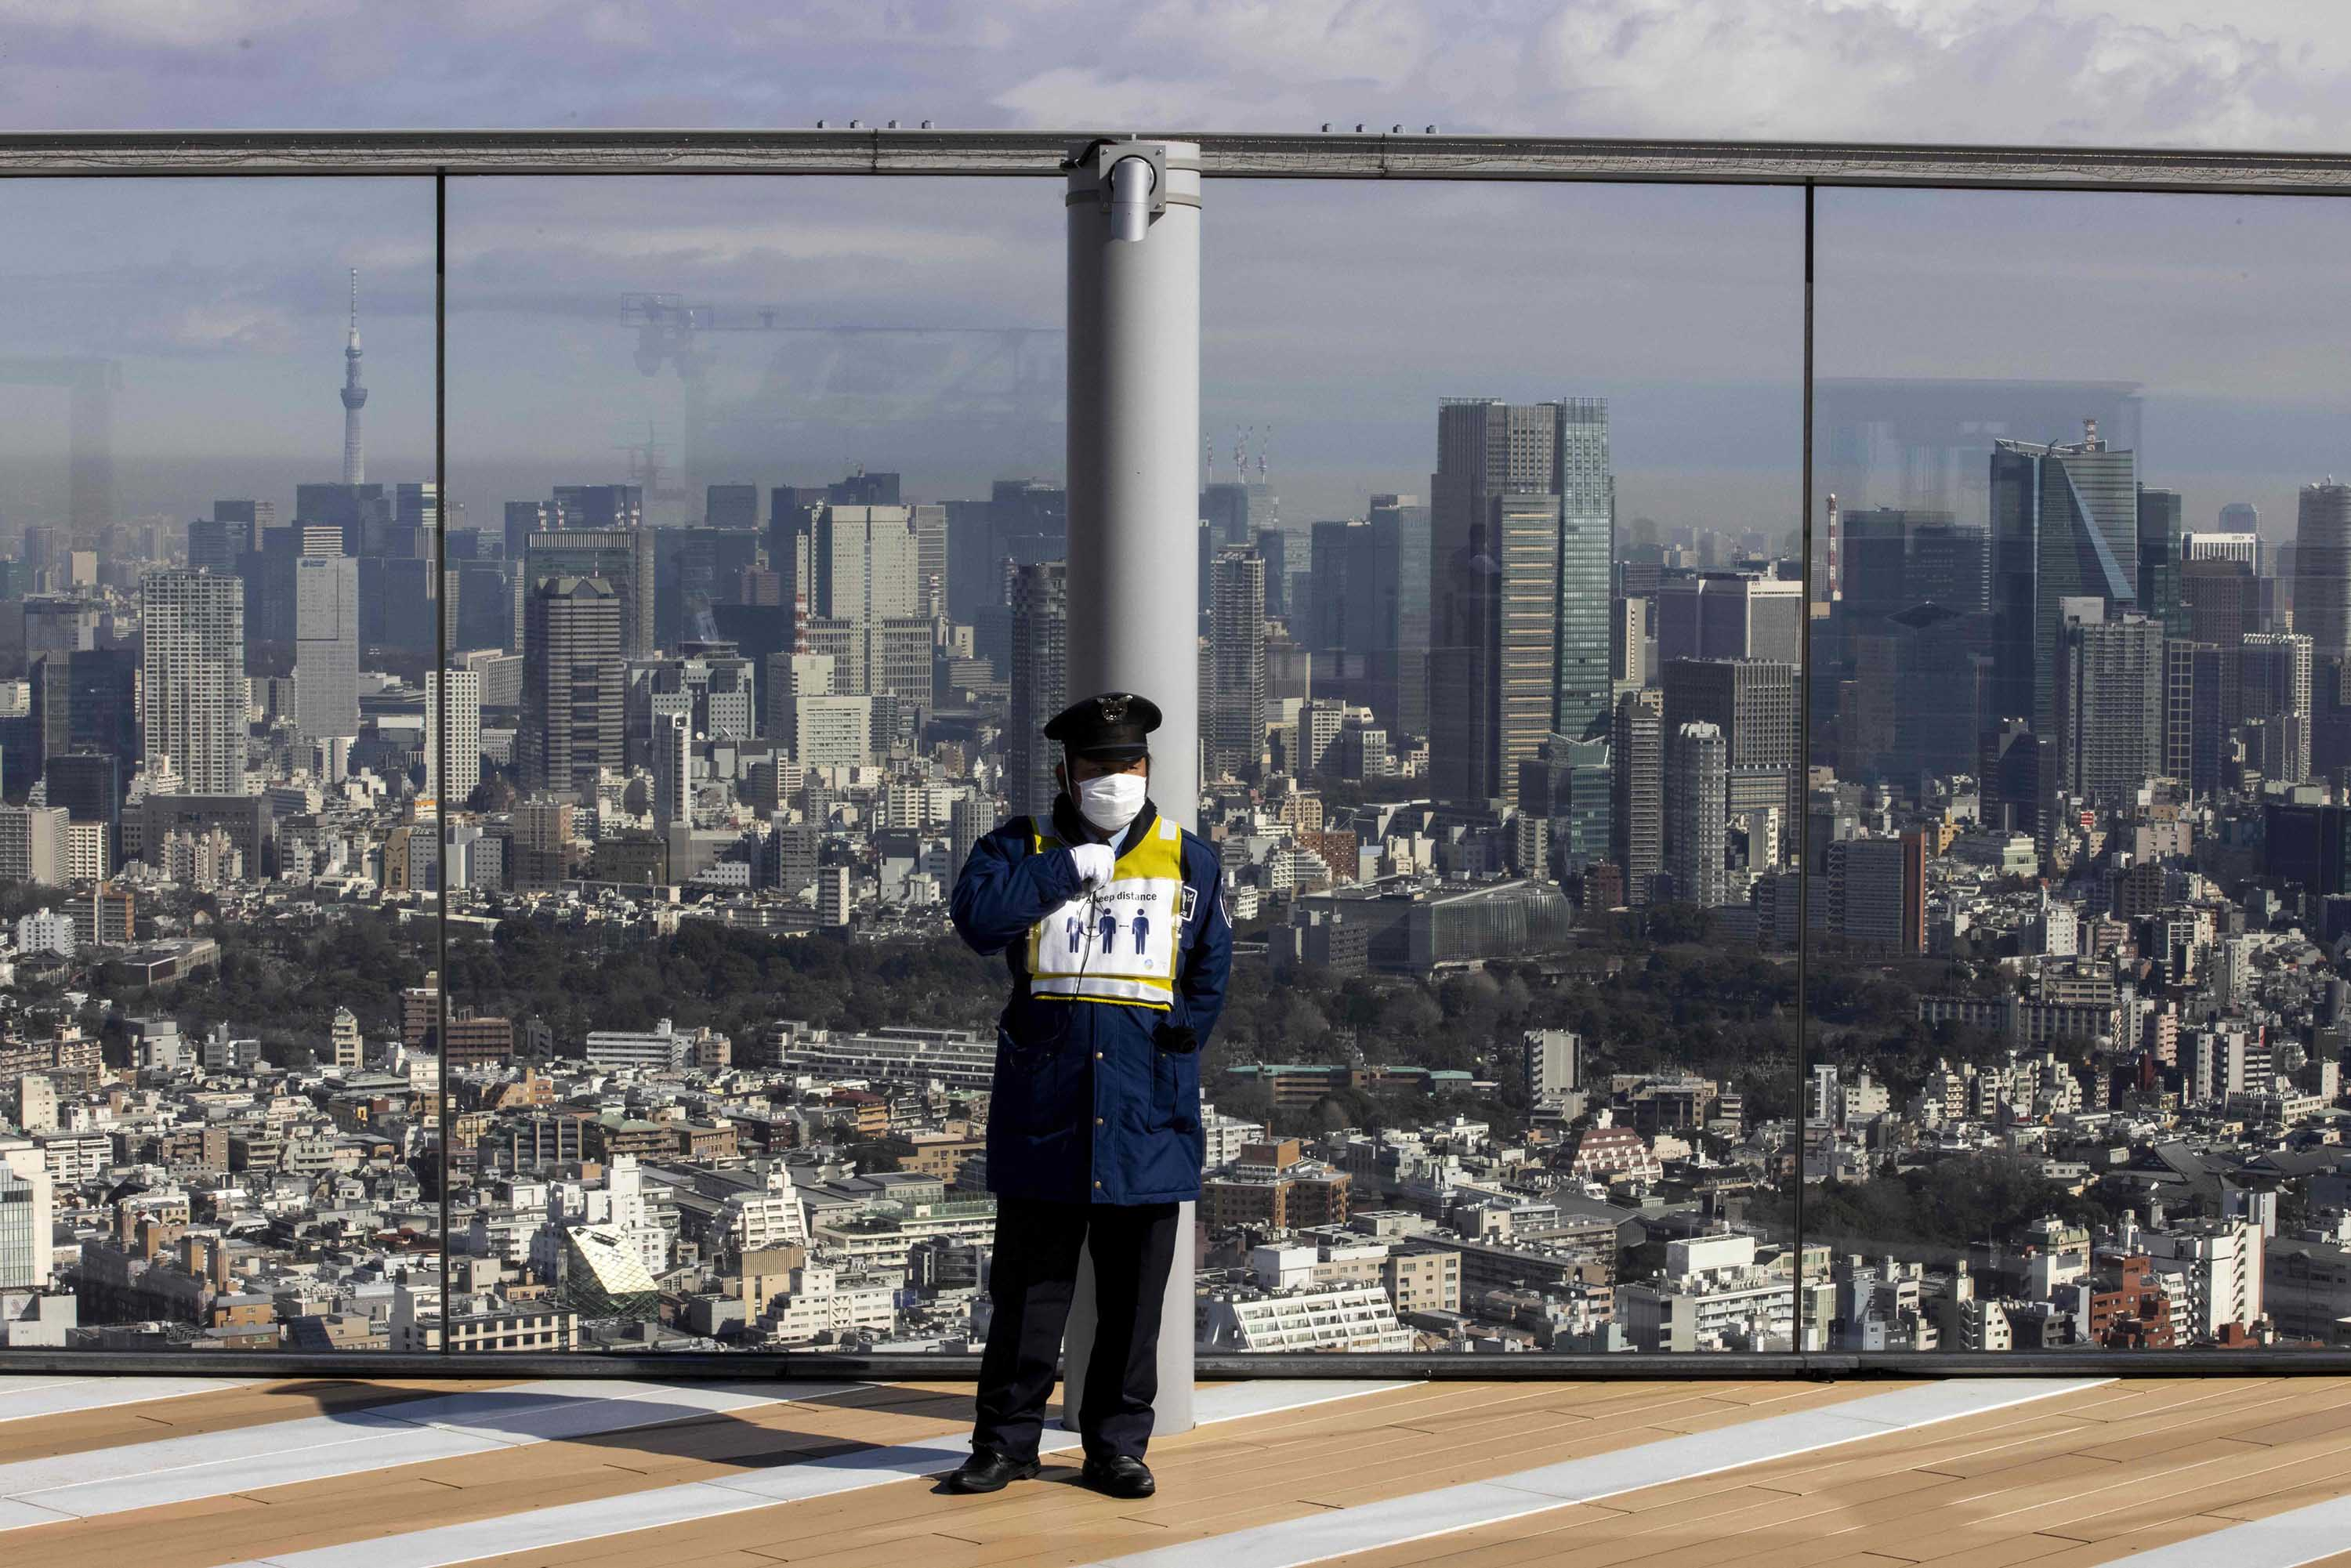 A security guard is seen on the Shibuya Sky observation deck overlooking Tokyo, on February 2, as Japan extended a coronavirus state of emergency in several parts of the country.